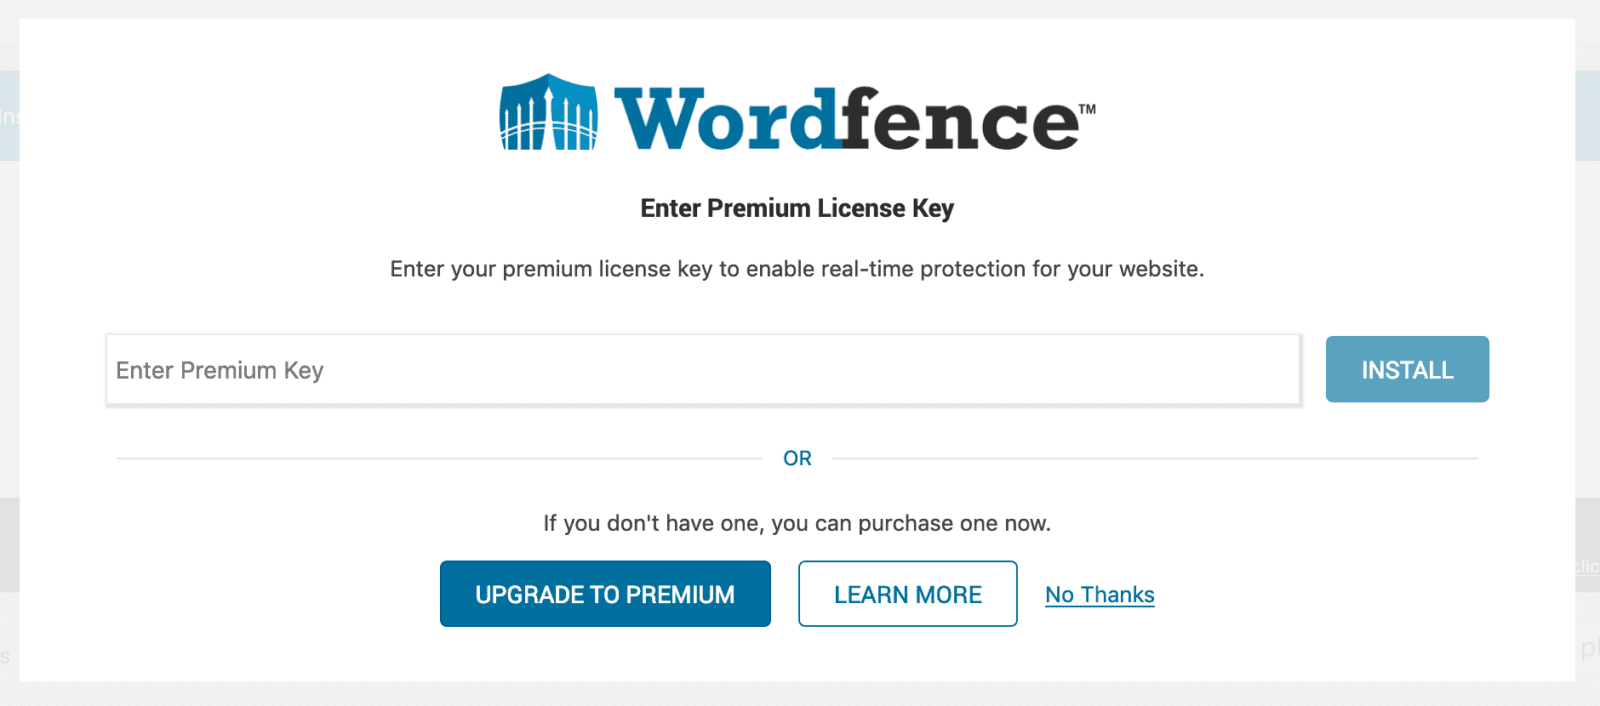 Descargar WordPress y configurar wordfence